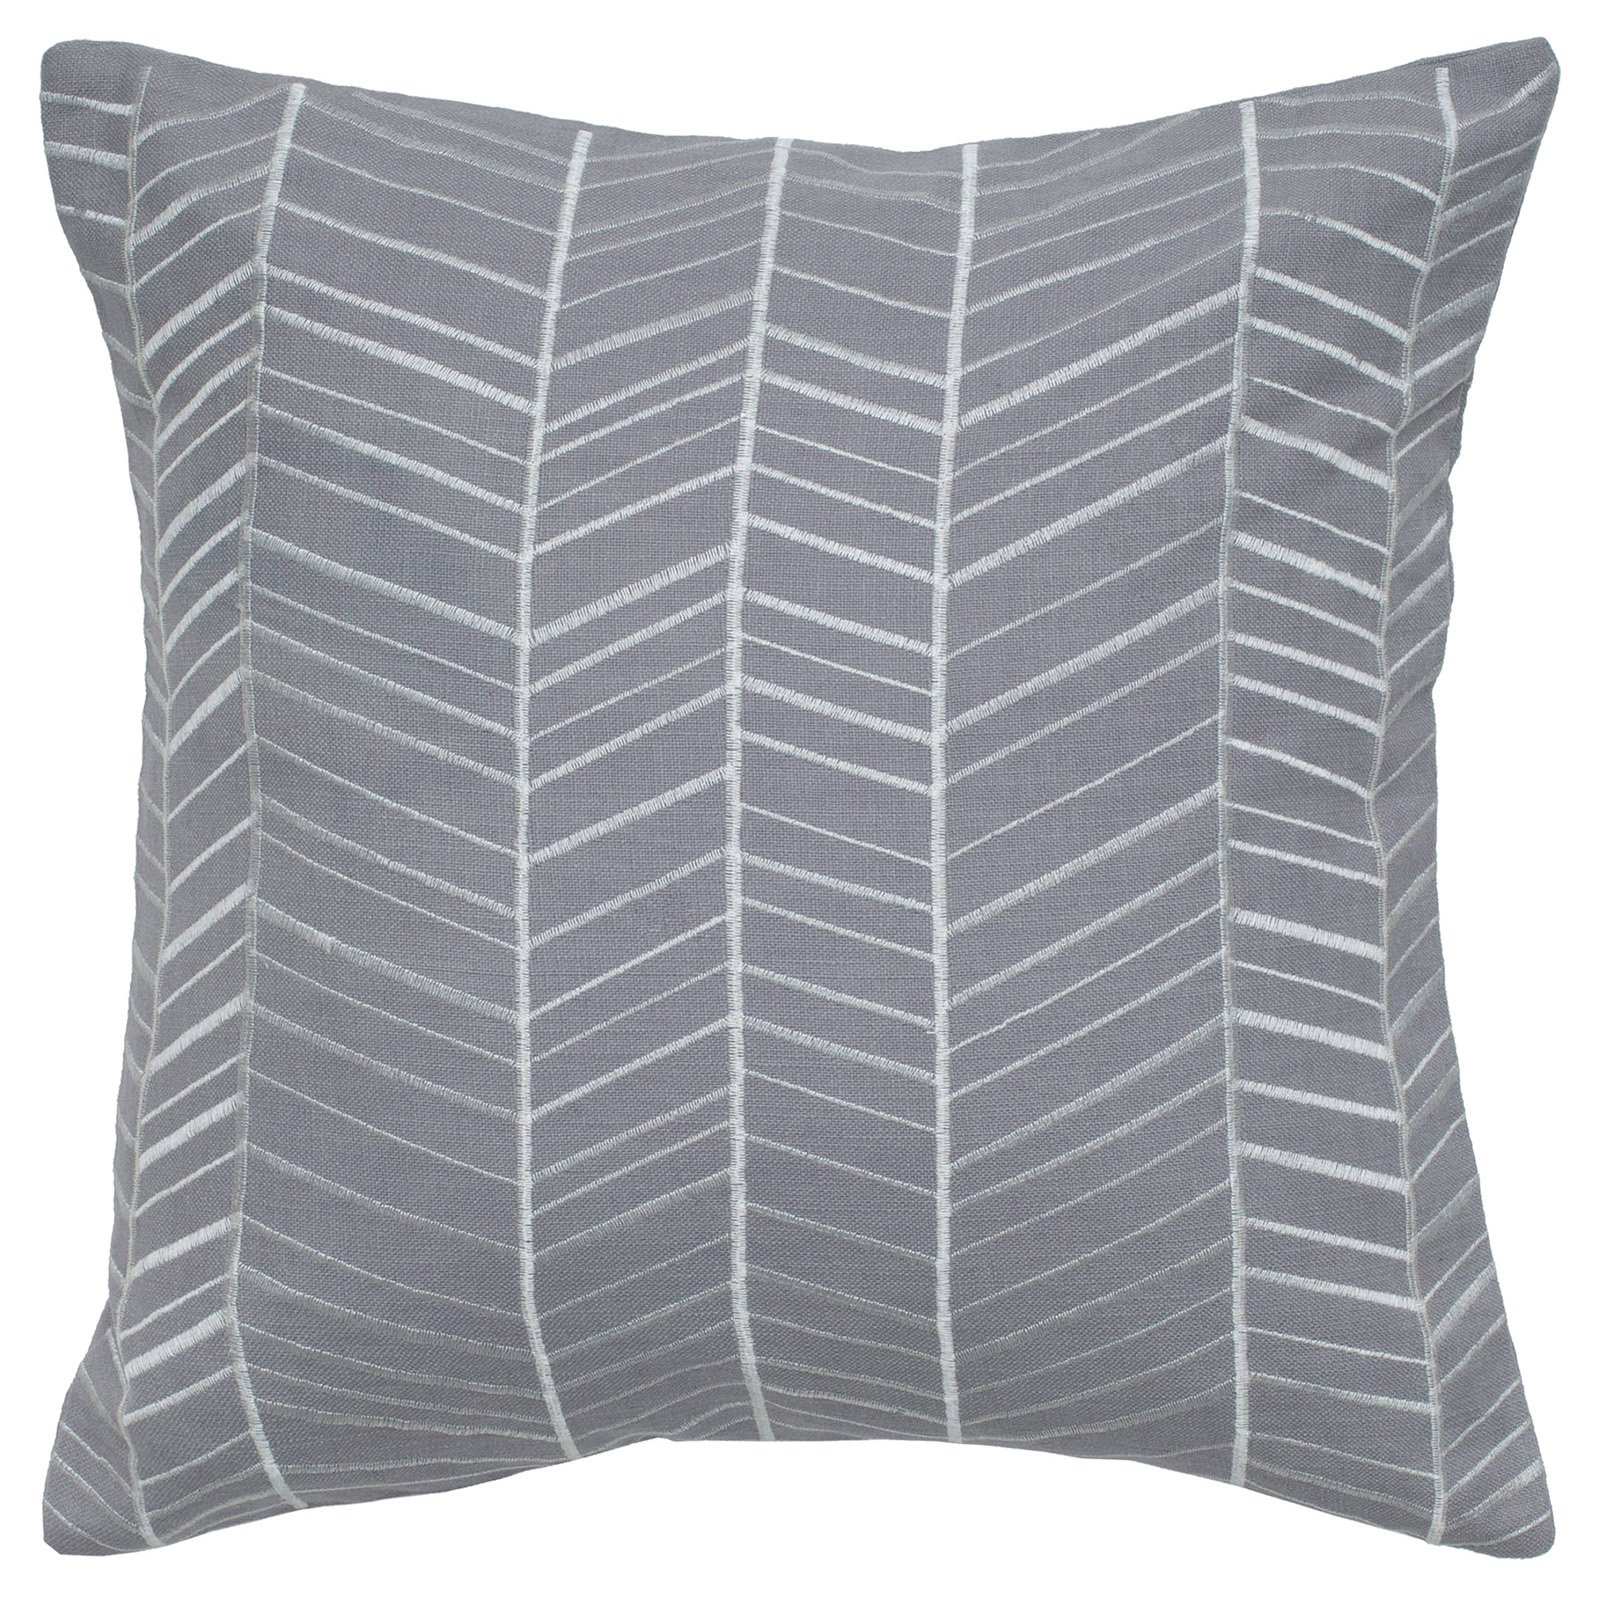 """Rizzy Home lines with lines18"""" x 18""""Cotton decorative filled pillow"""